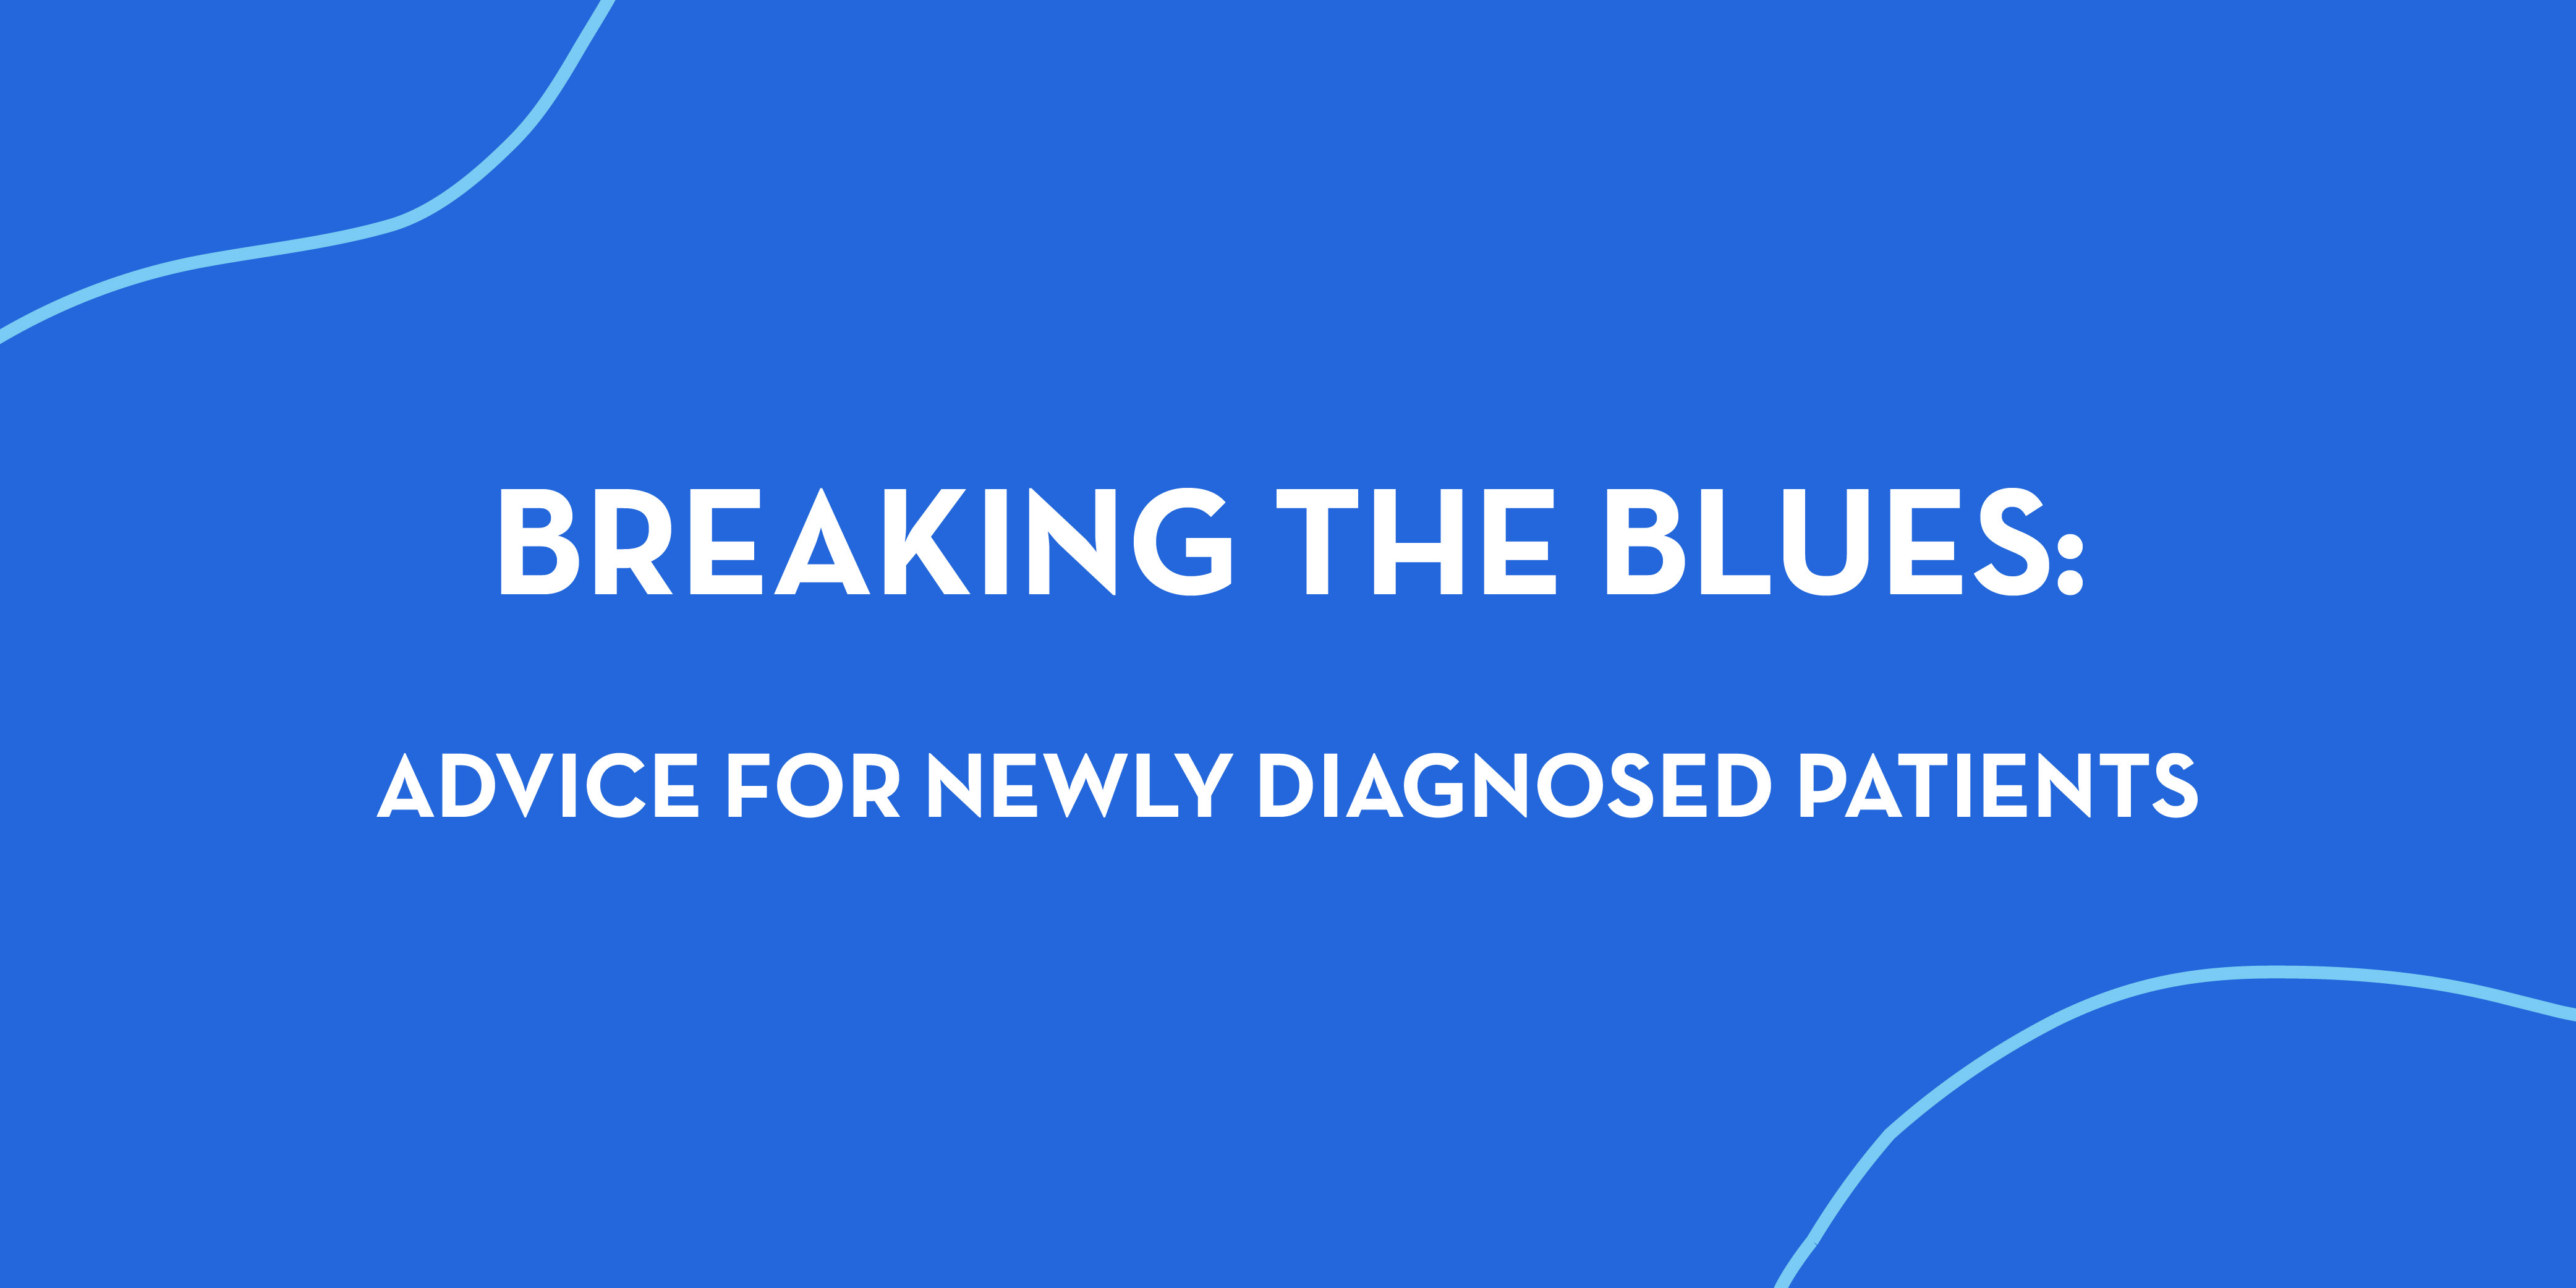 Breaking the Blues: Advice for Newly Diagnosed Patients